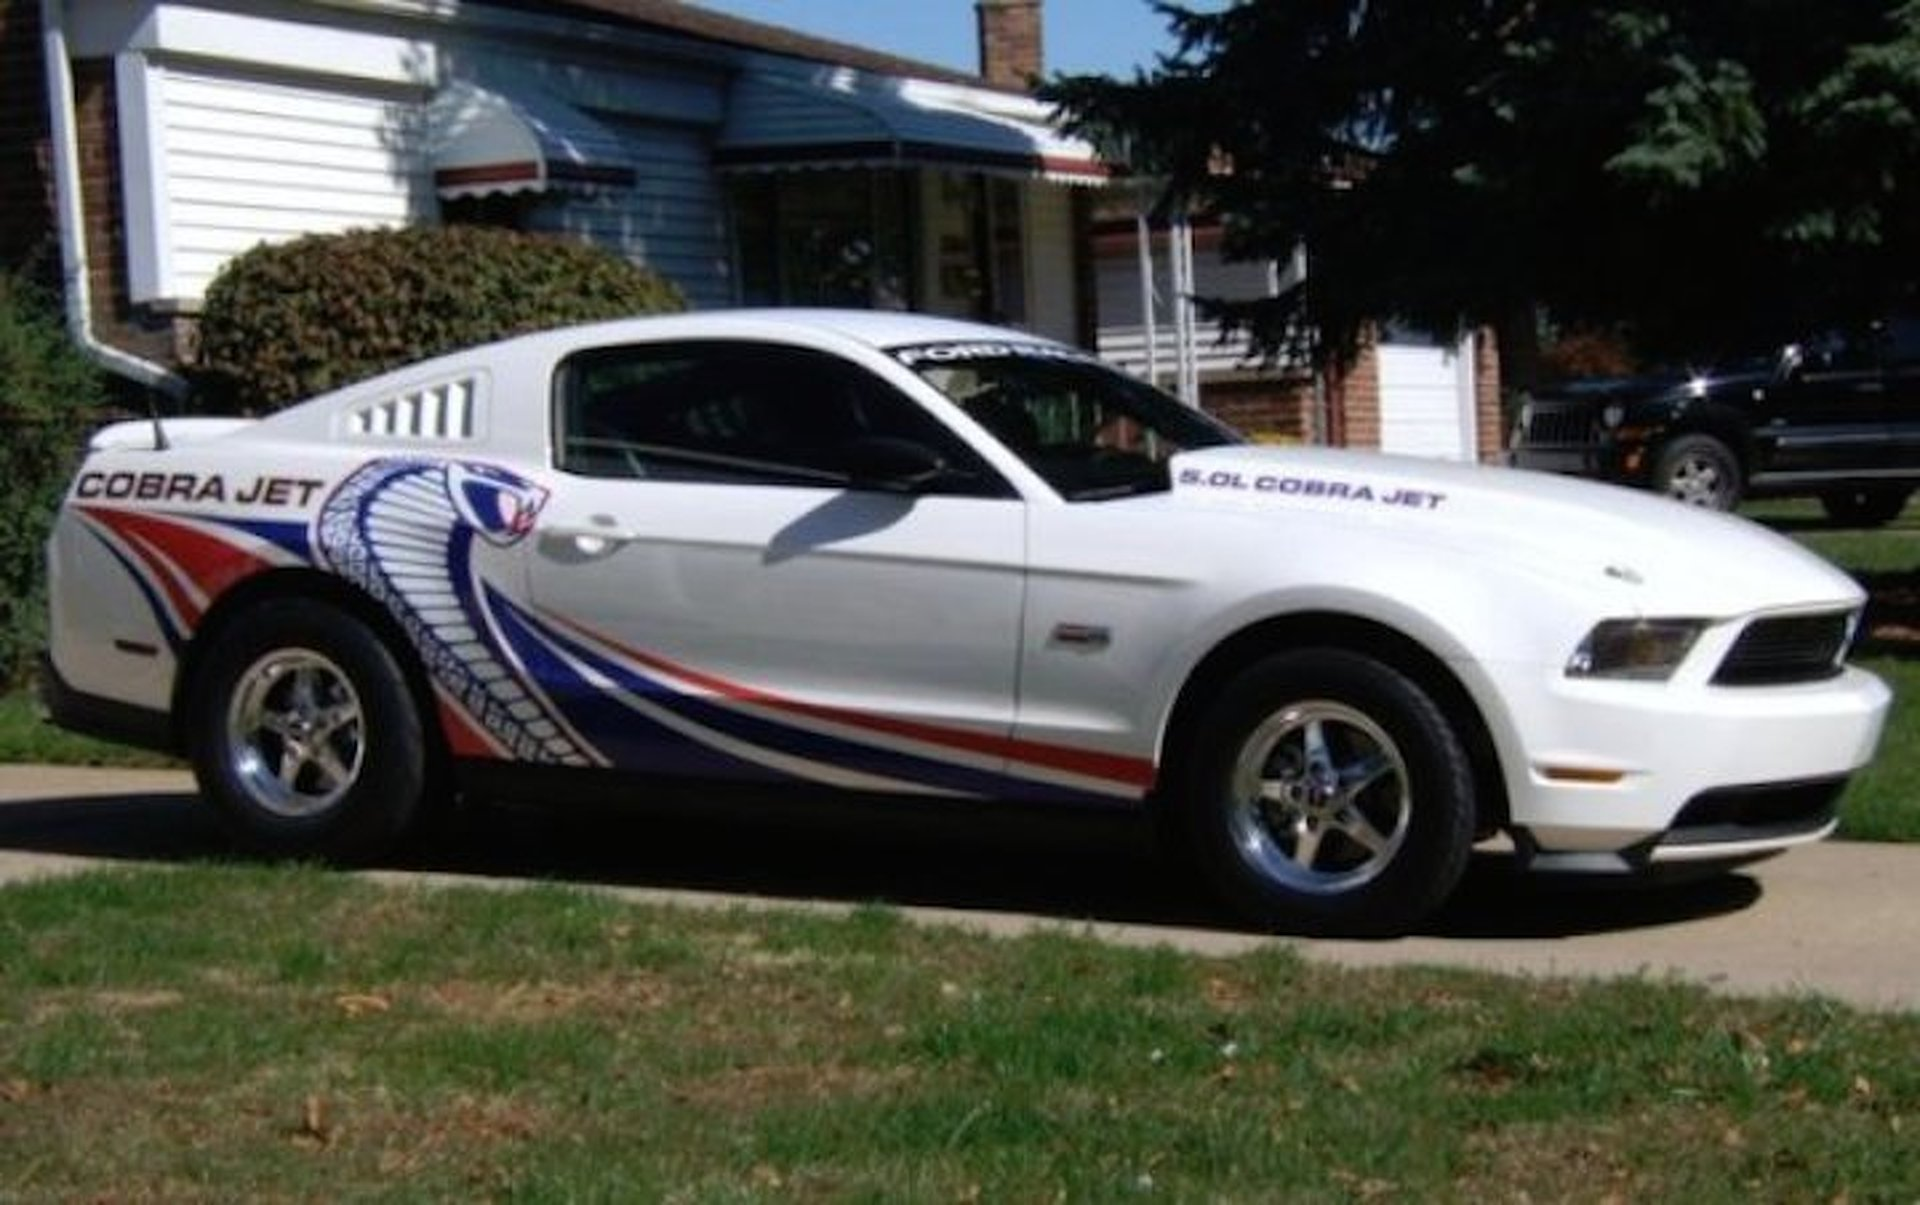 Street legal ford mustang cobra jet will fulfill your drag racing dreams for sale